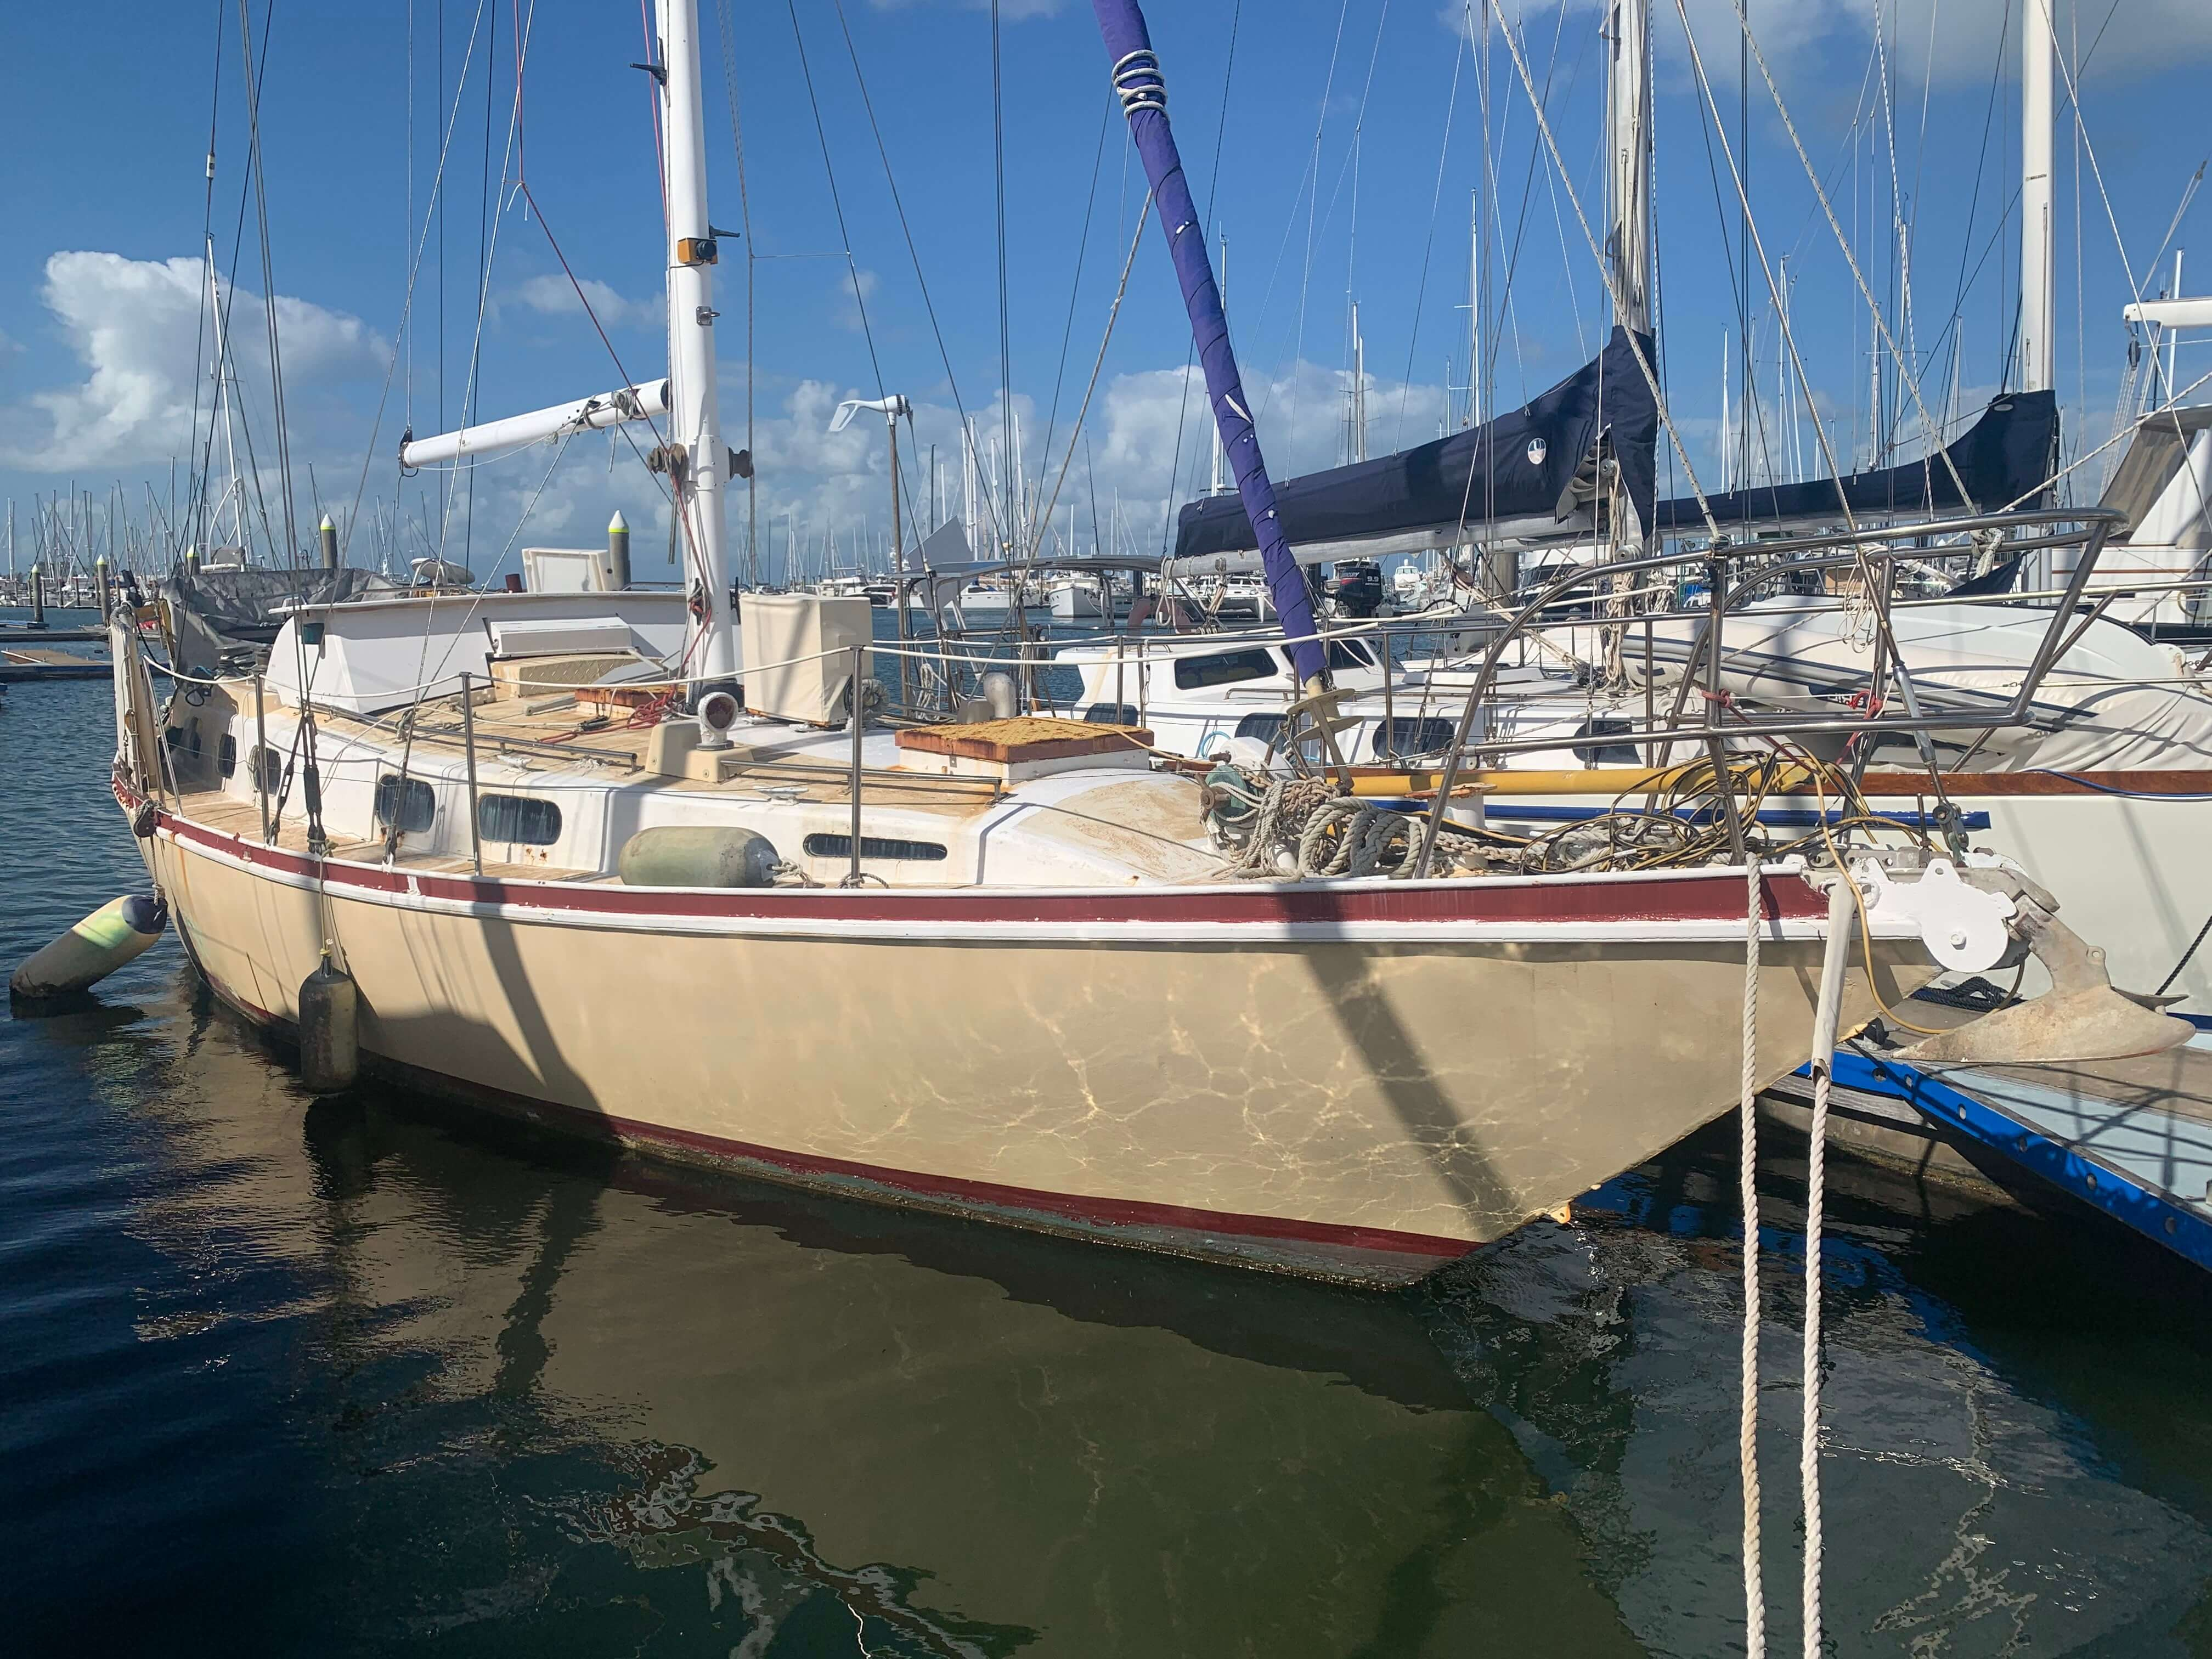 1982 Ganley 10.0m Yacht- TO BE SOLD UNRESERVED